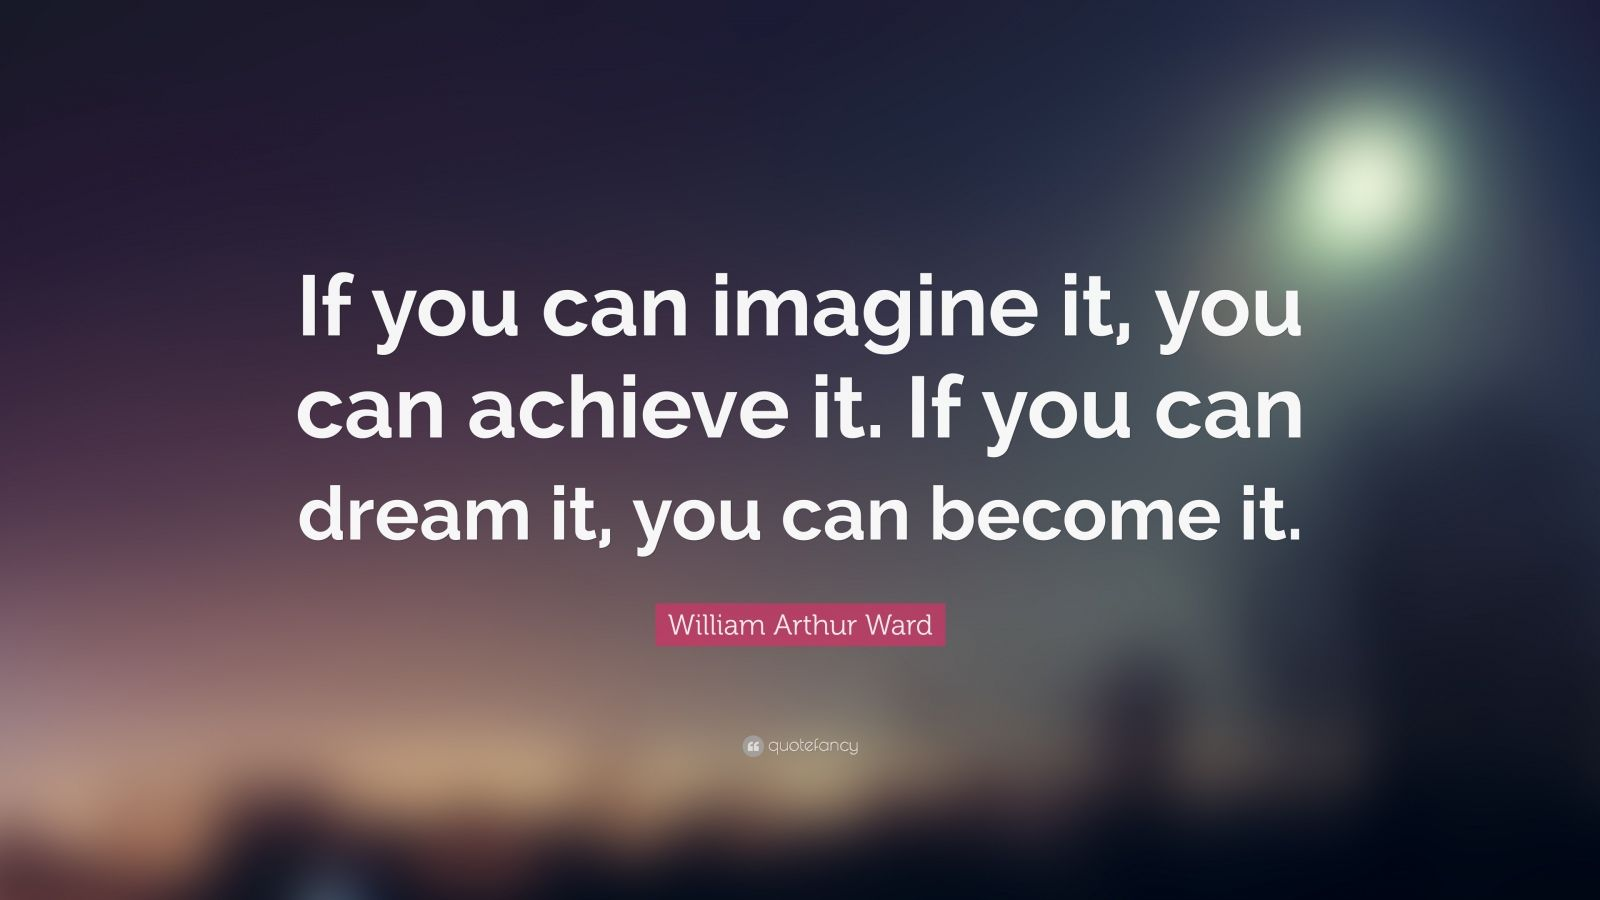 Achieve Quotes Wallpaper William Arthur Ward Quote If You Can Imagine It You Can